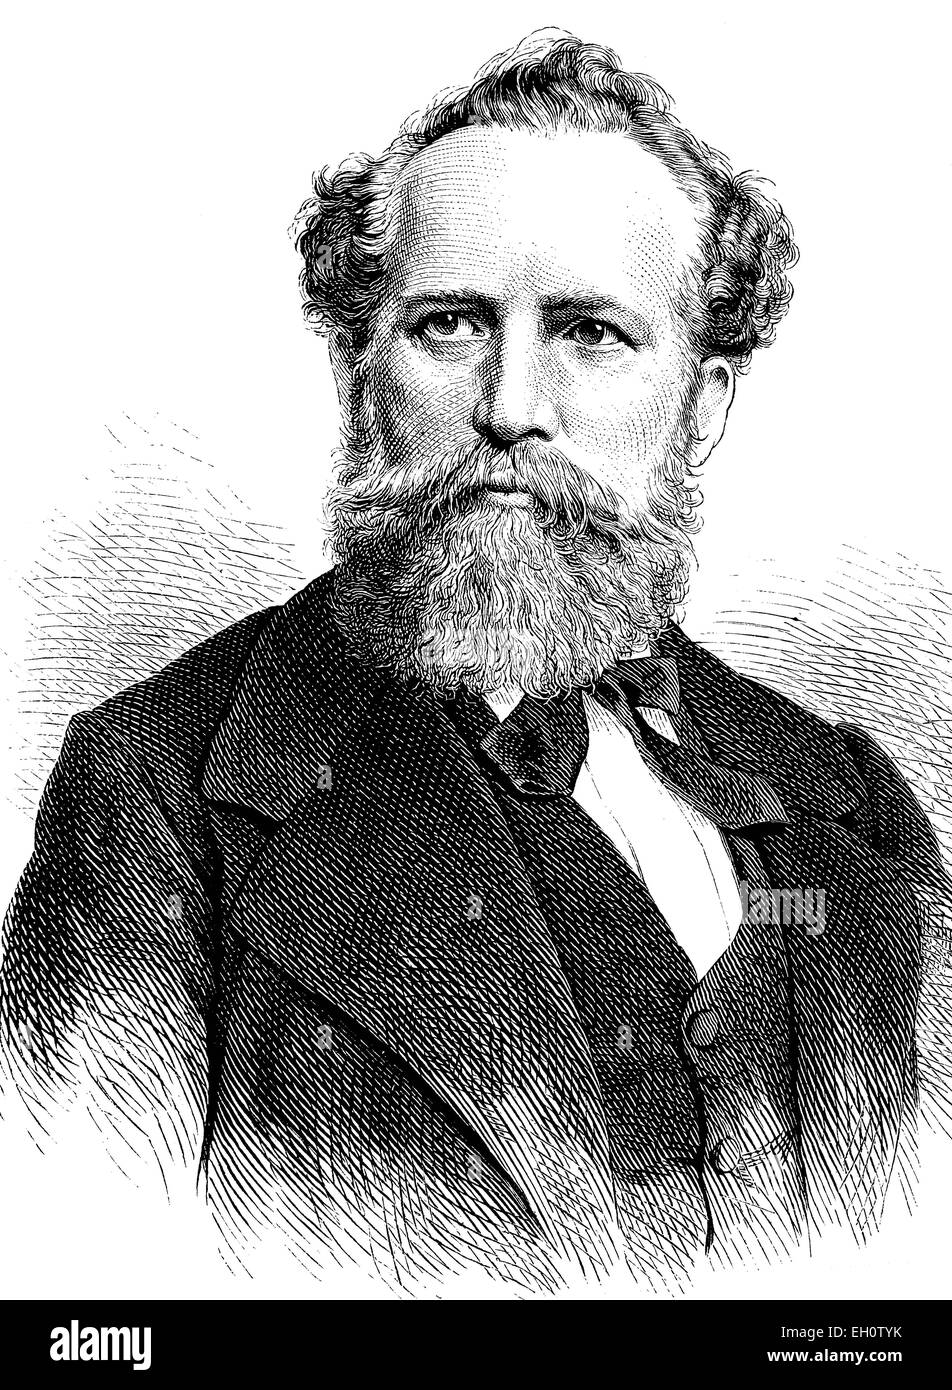 Emil Palleske, 1823-1880, actor and writer, historical illustration, circa 1886 Stock Photo